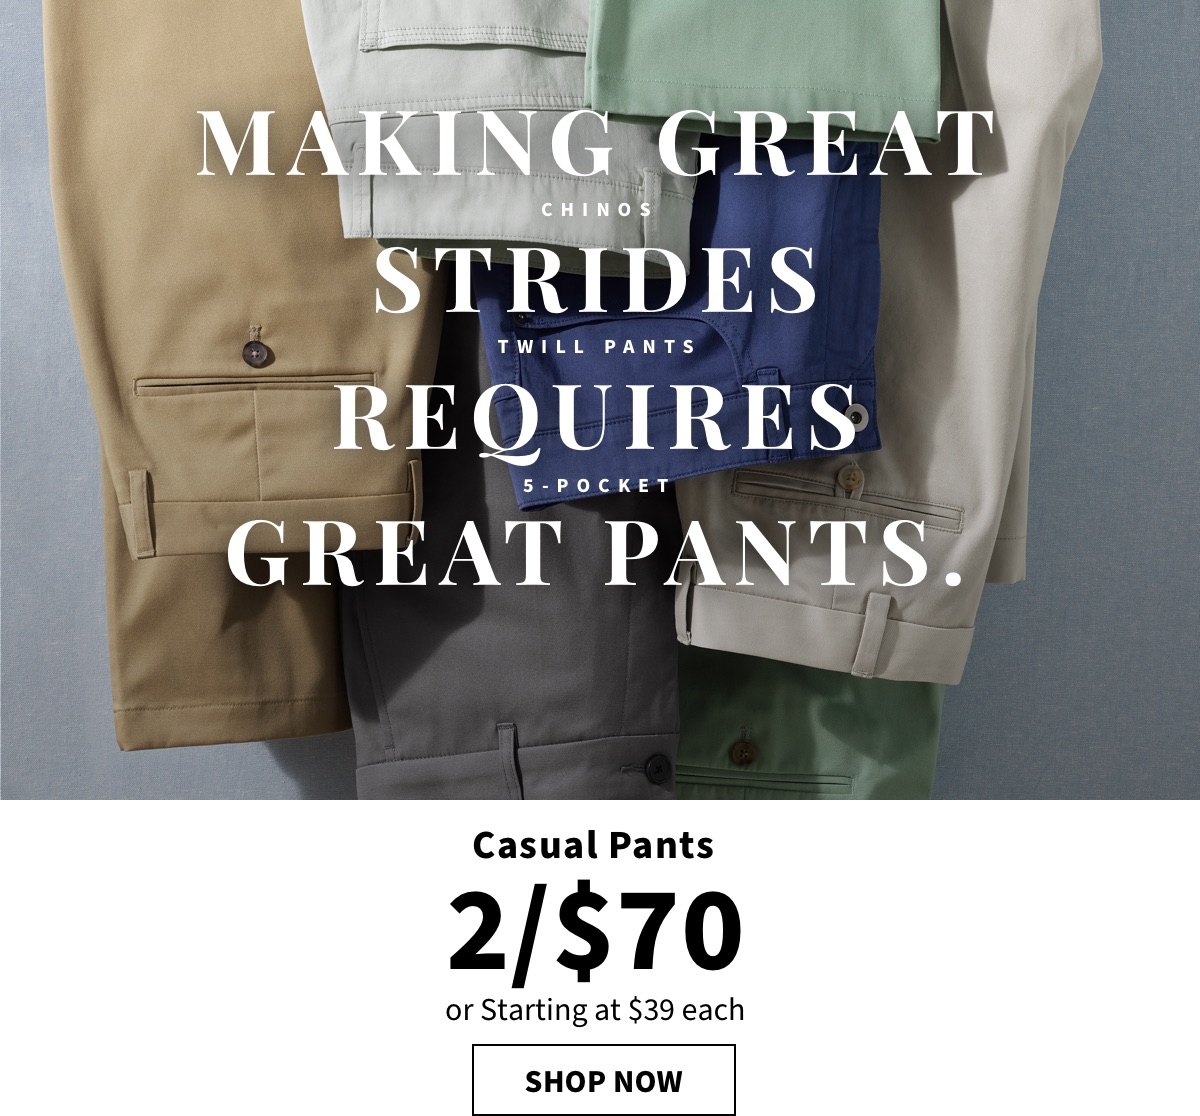 MAKING GREAT STRIDES REQUIRES GREAT PANTS. |2 for $70 Casual Pants - Shop Now